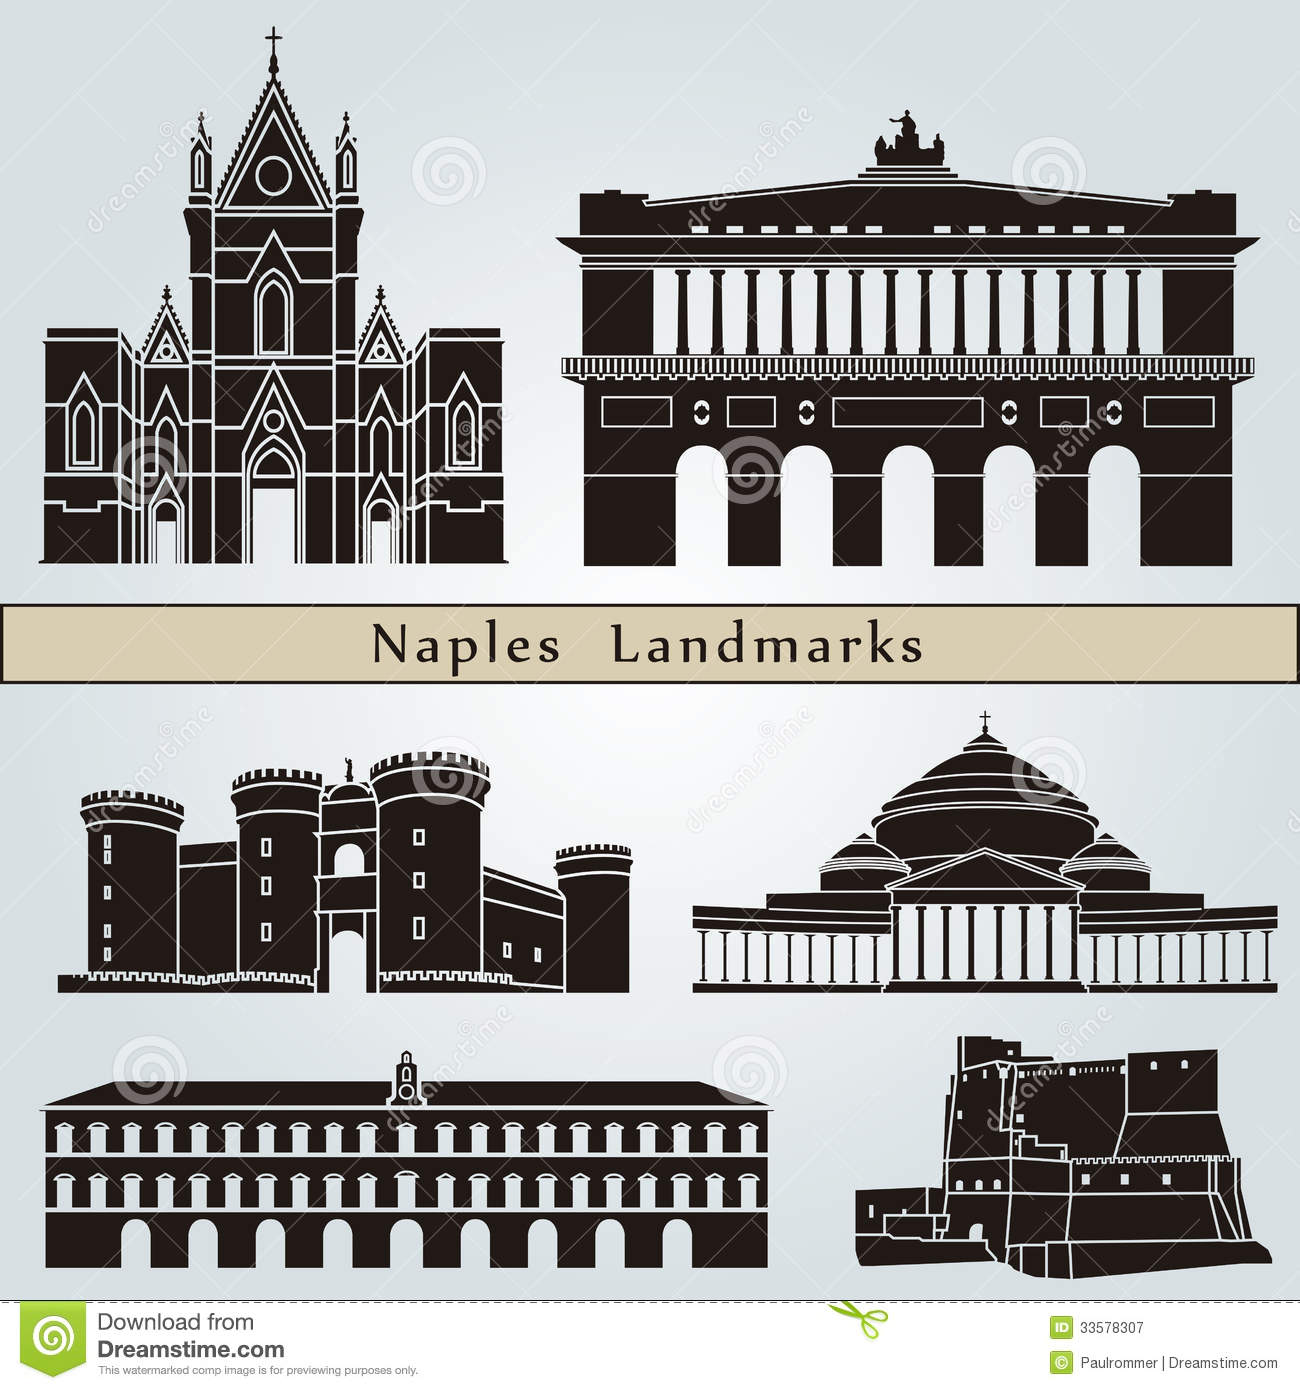 Naples Landmarks And Monuments Royalty Free Stock Photography - Image ...